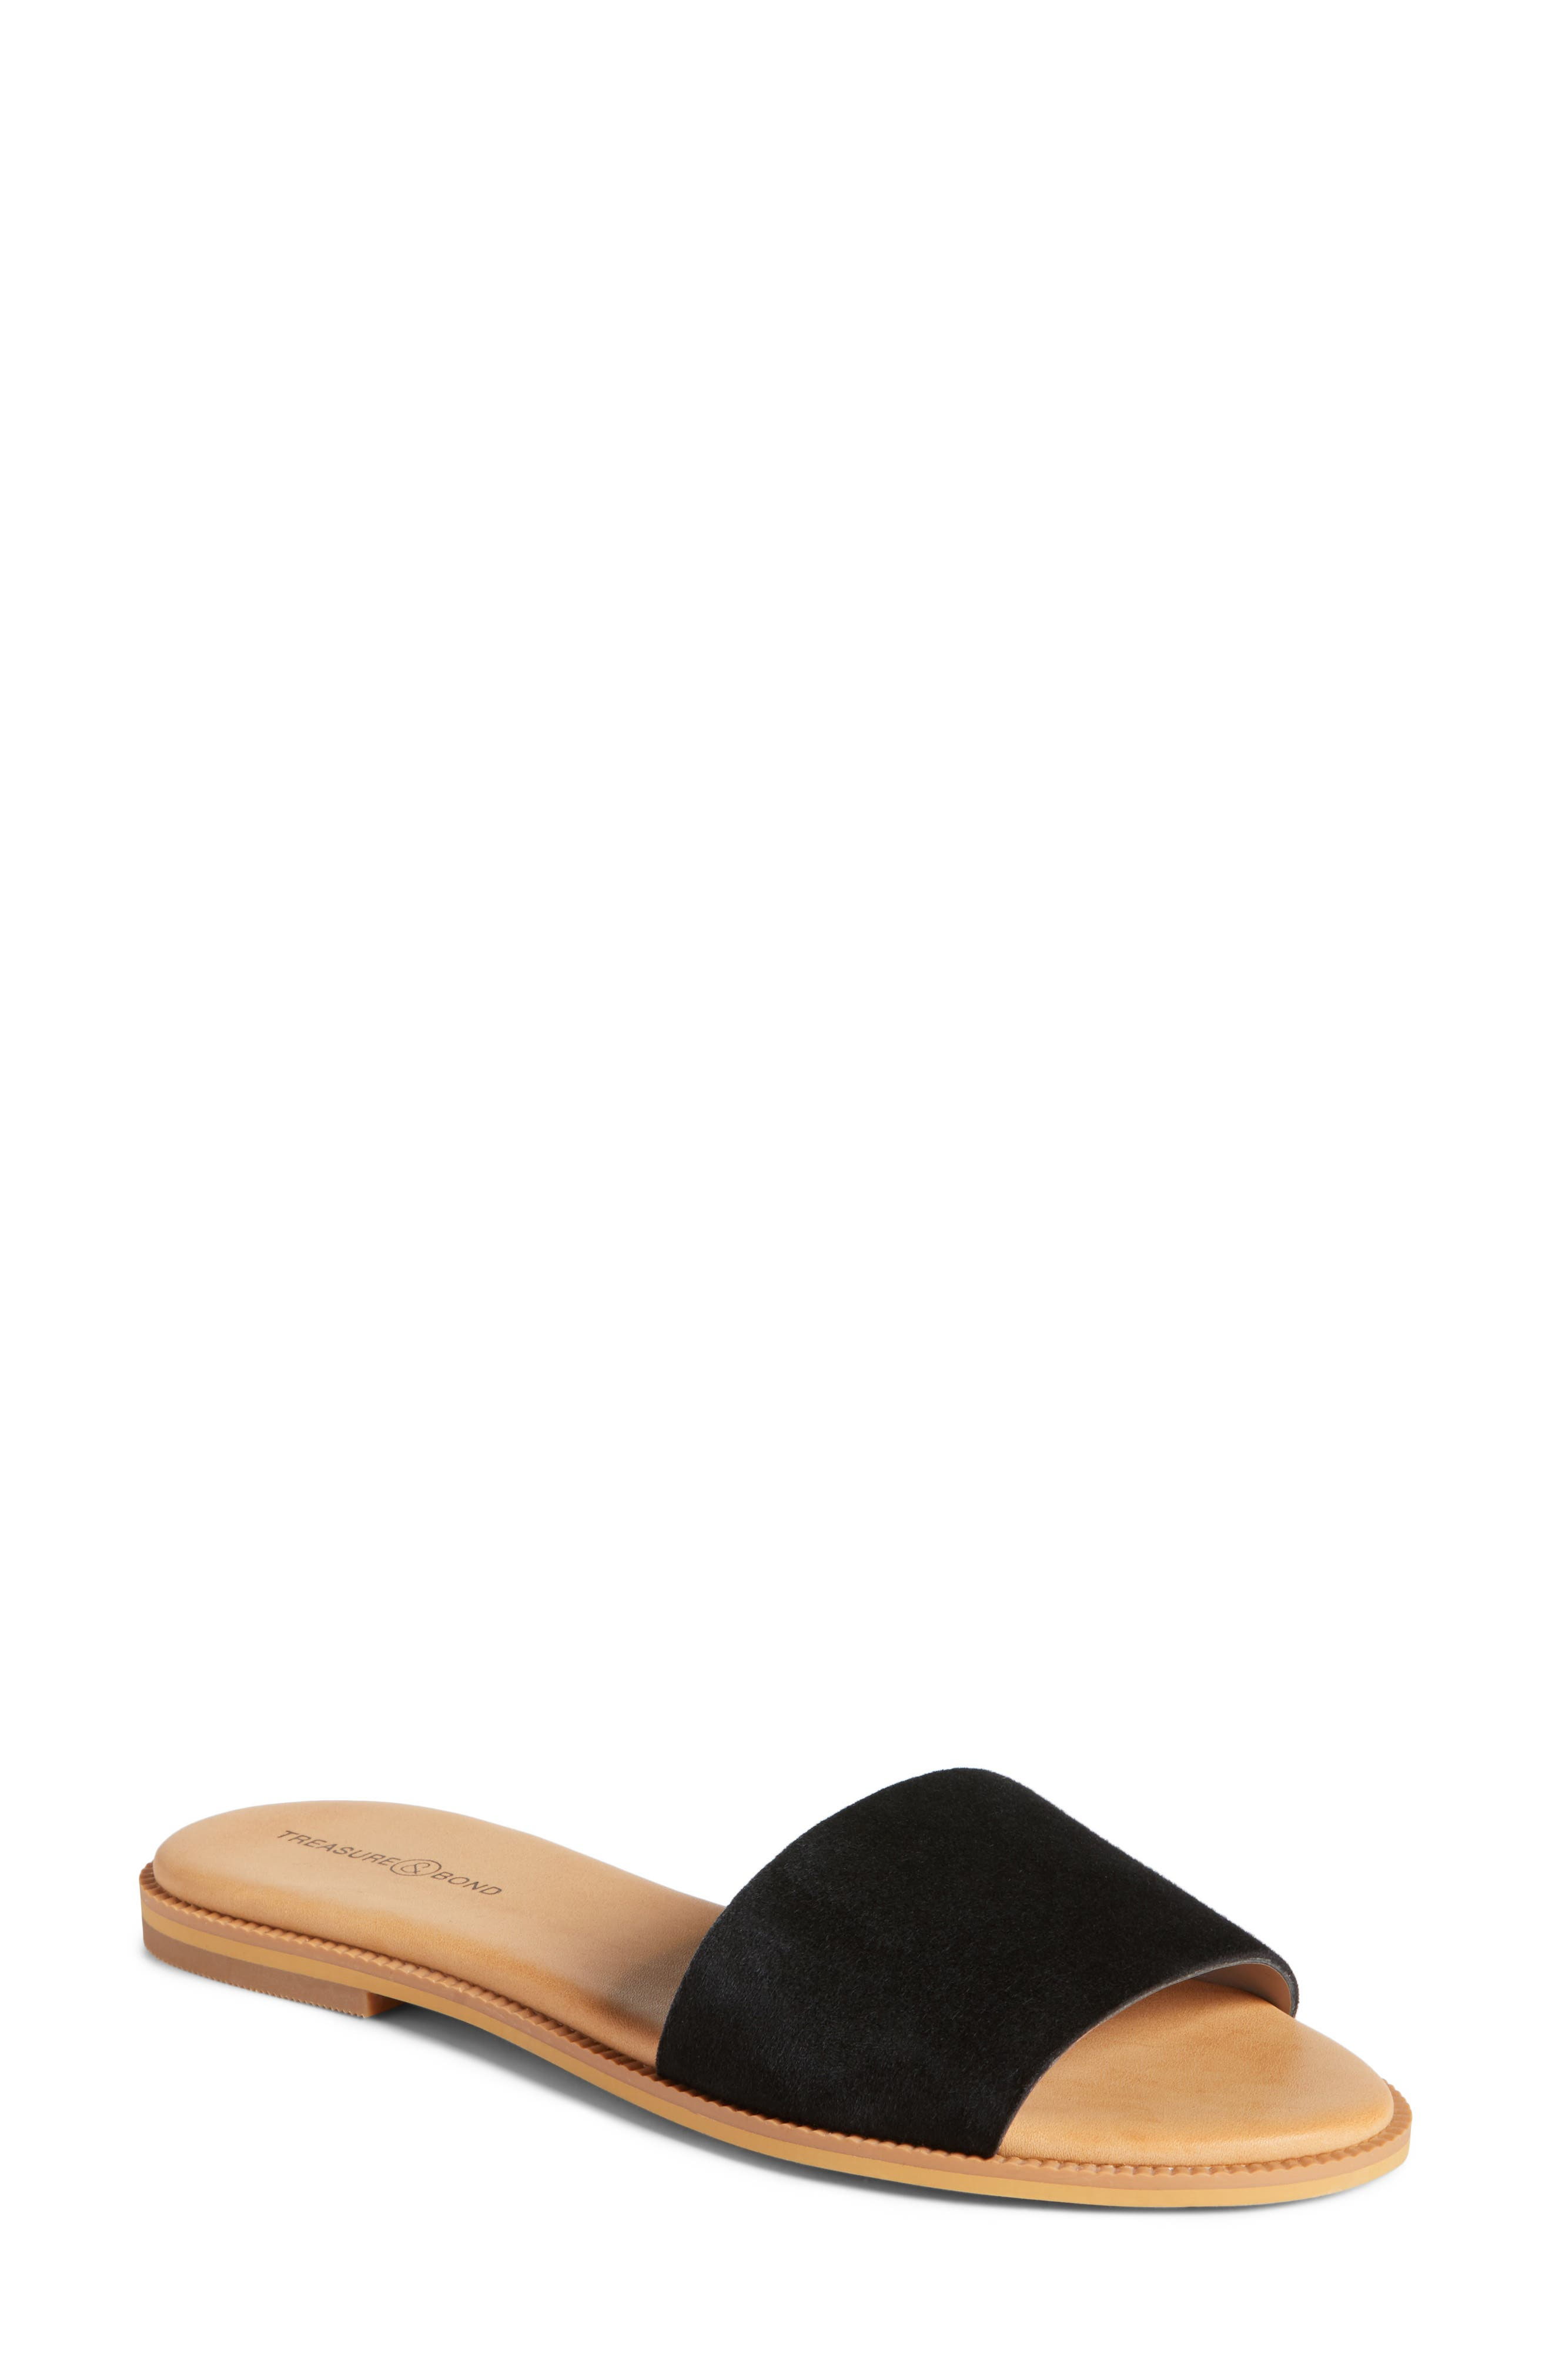 Mere Flat Slide Sandal,                             Main thumbnail 1, color,                             Black Suede